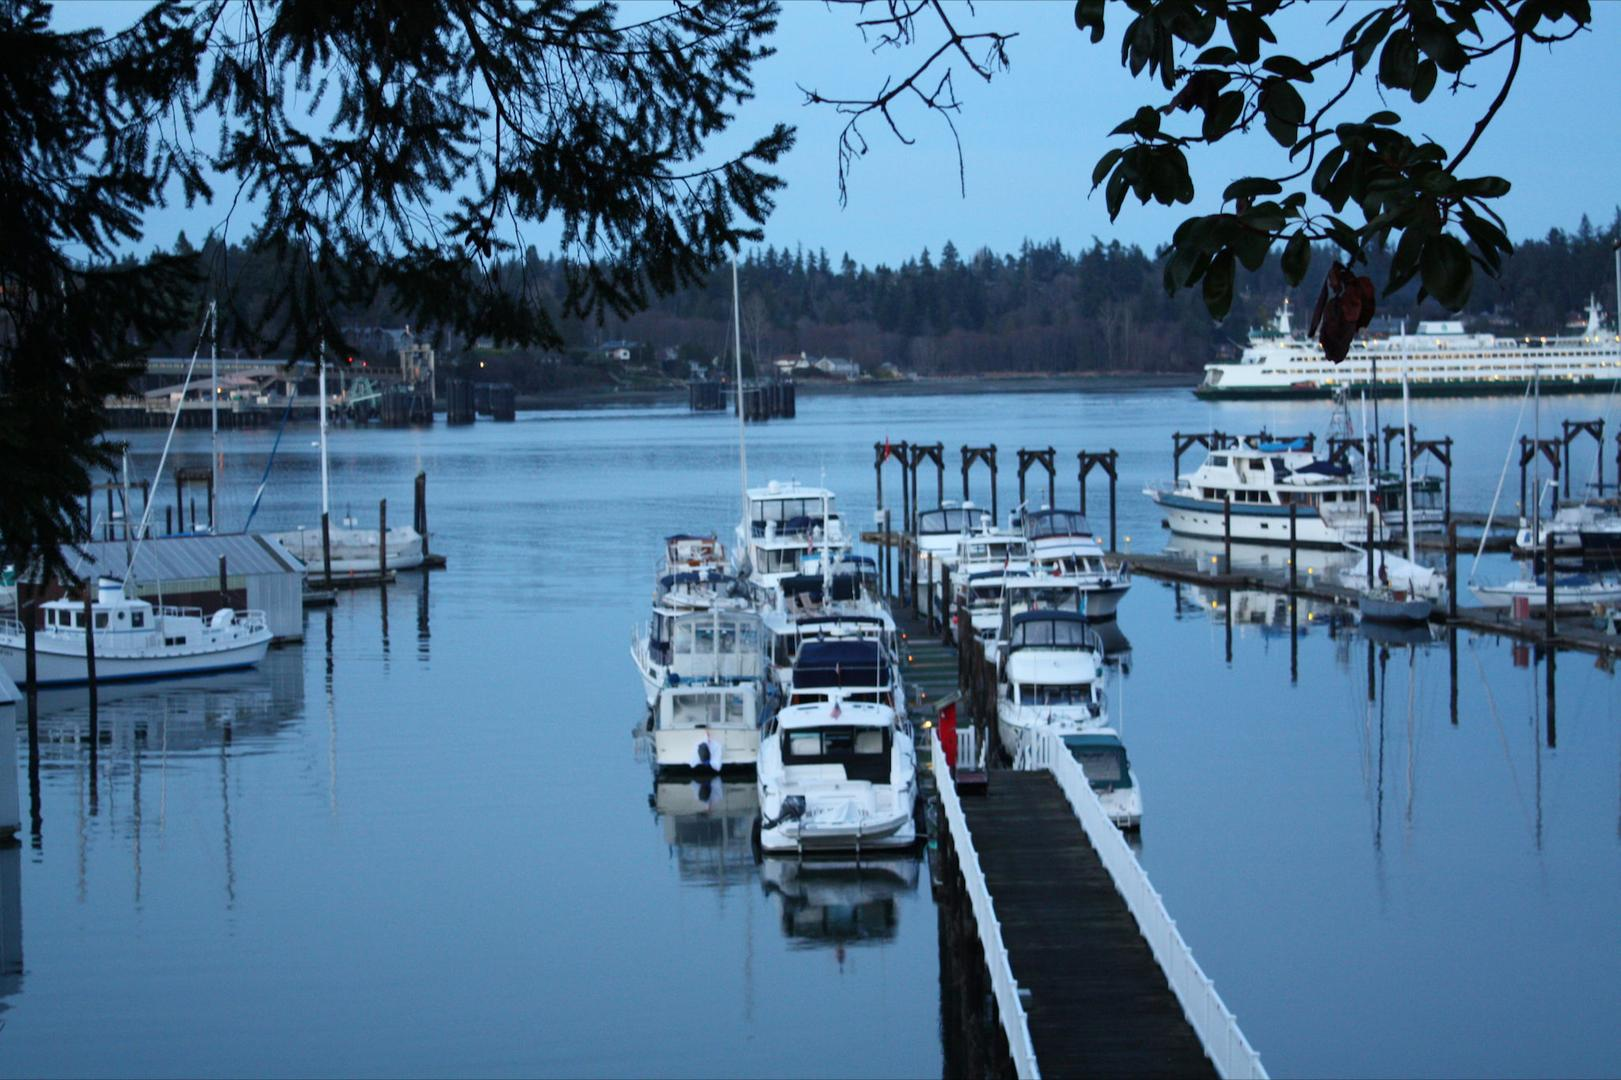 space at Tyee Yacht Club